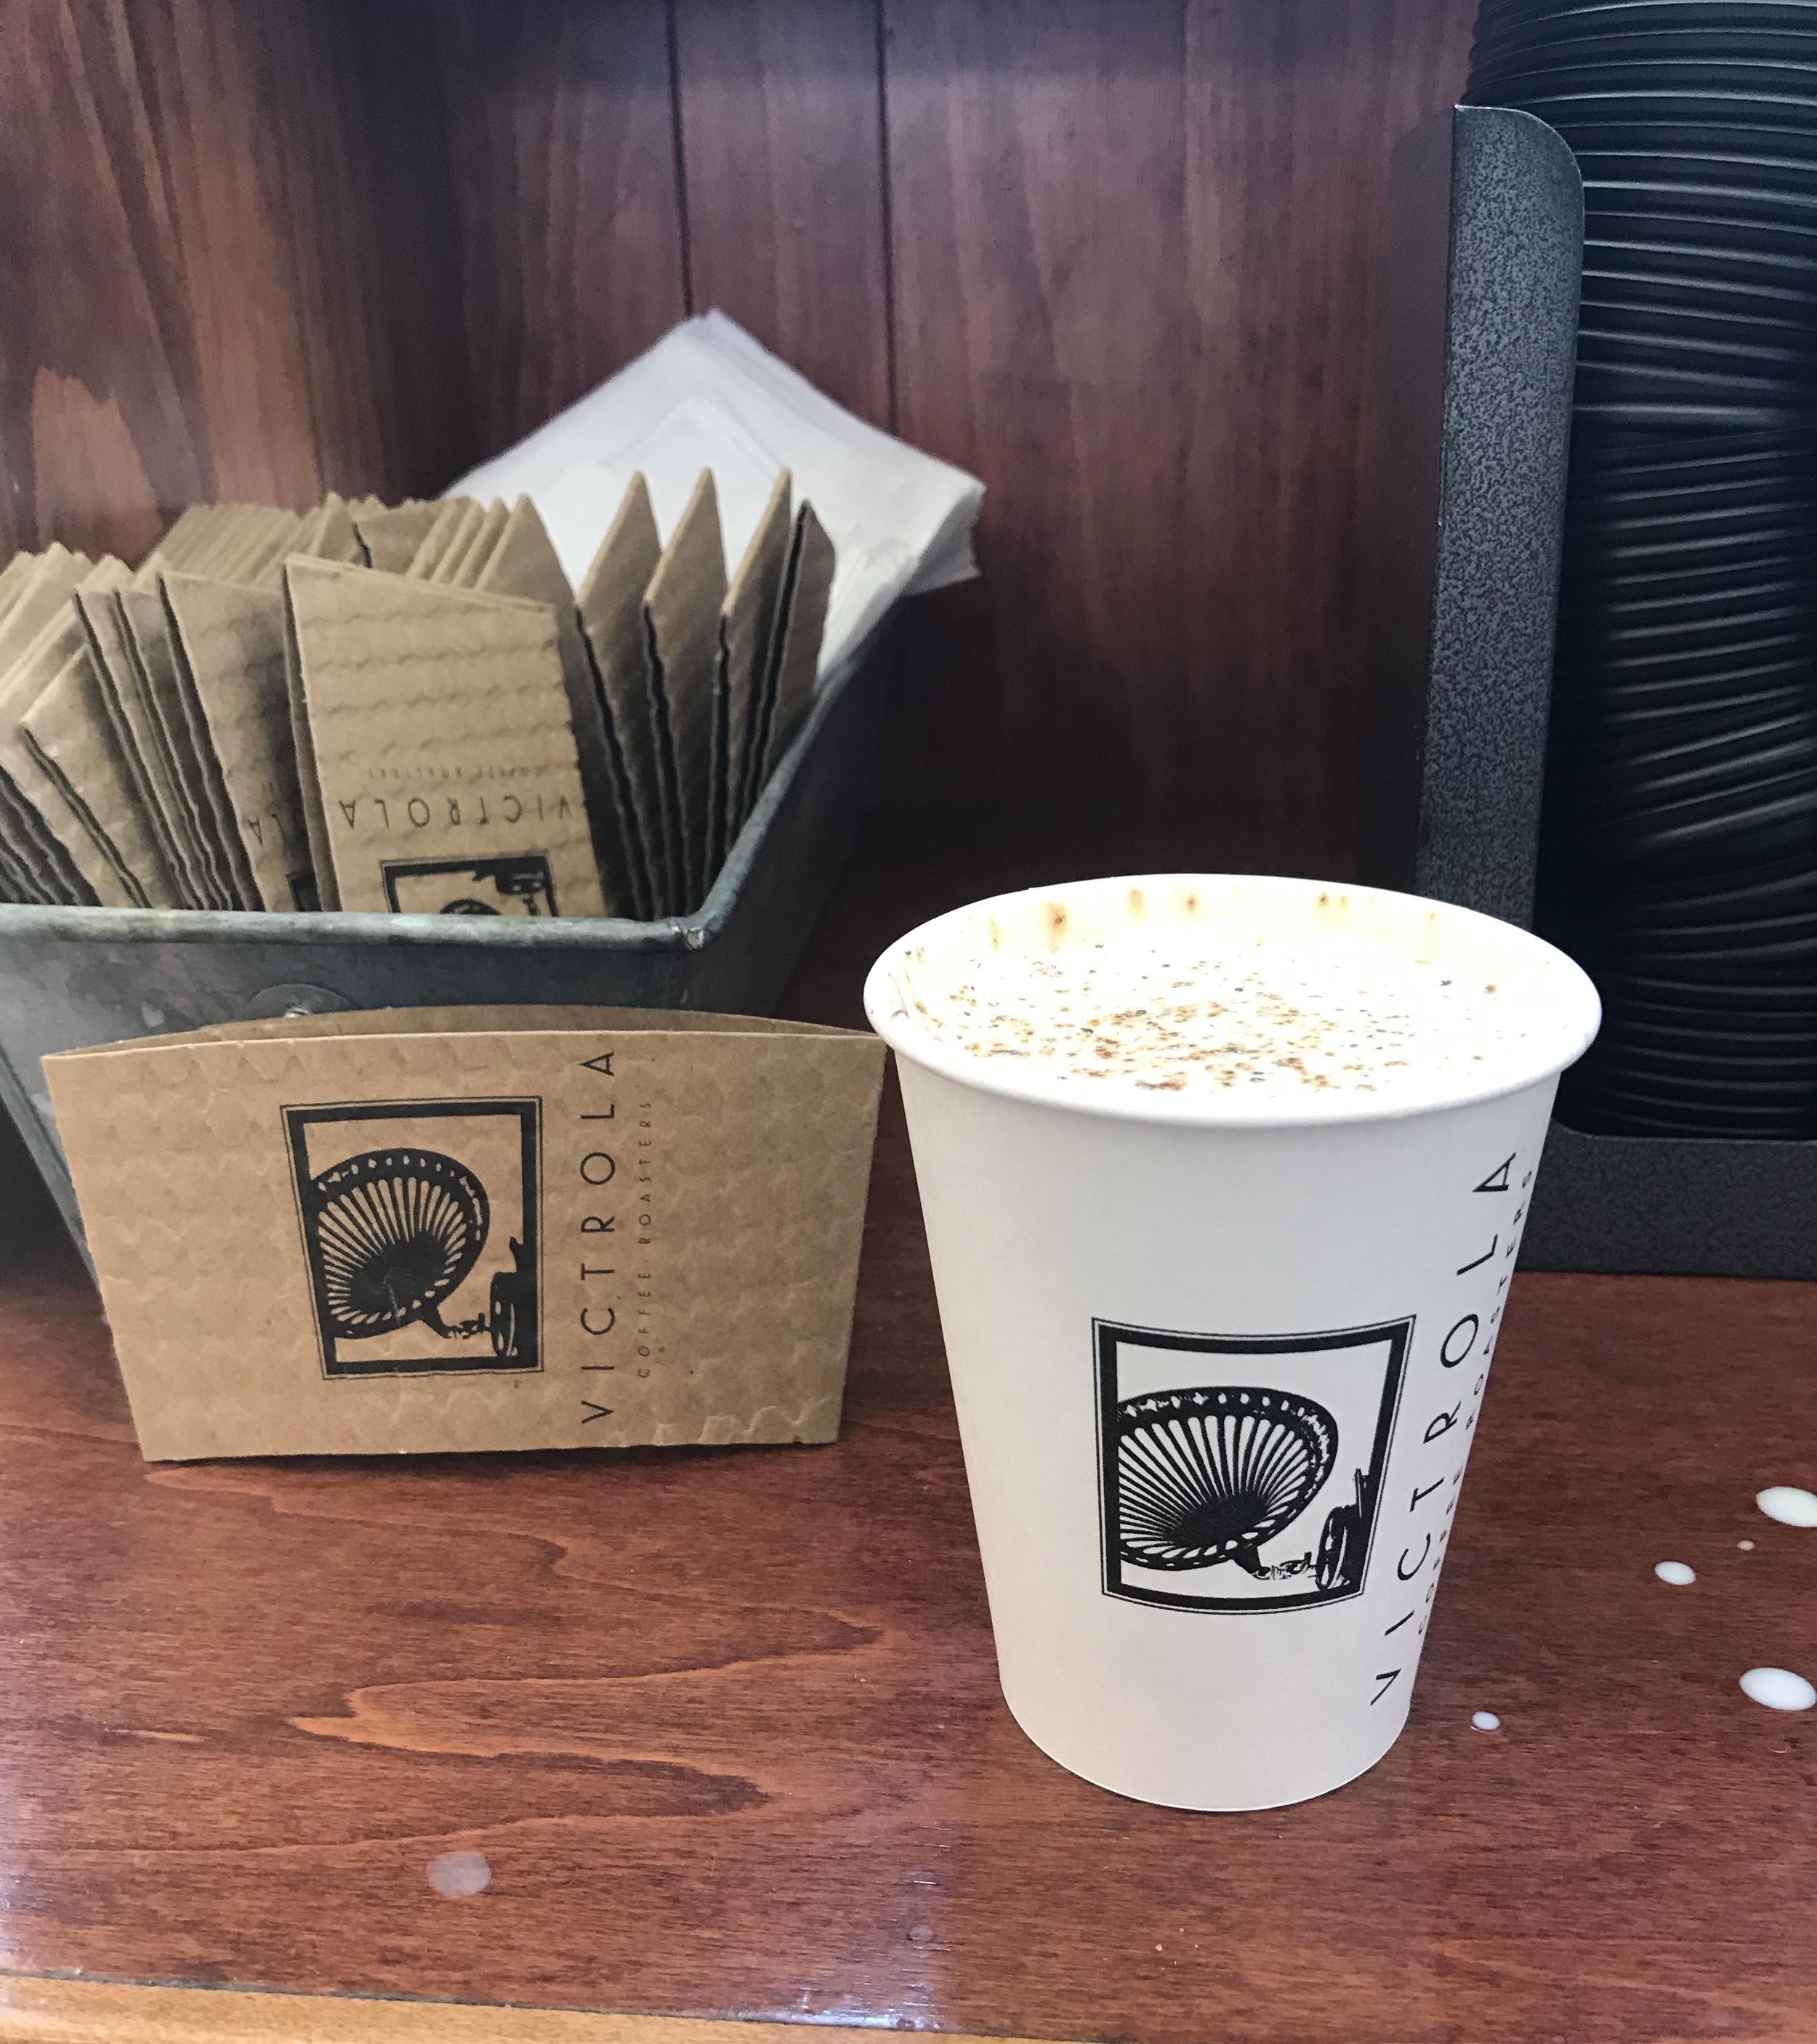 My overpriced dixie cup of tumeric latte at a local coffee shop. So many in this city seriously don't understand what it's like to live on a really small budget. It's embarrassing. I'm embarrassed for some of these businesses and the people who choose to look away and pretend like all of this is ok.